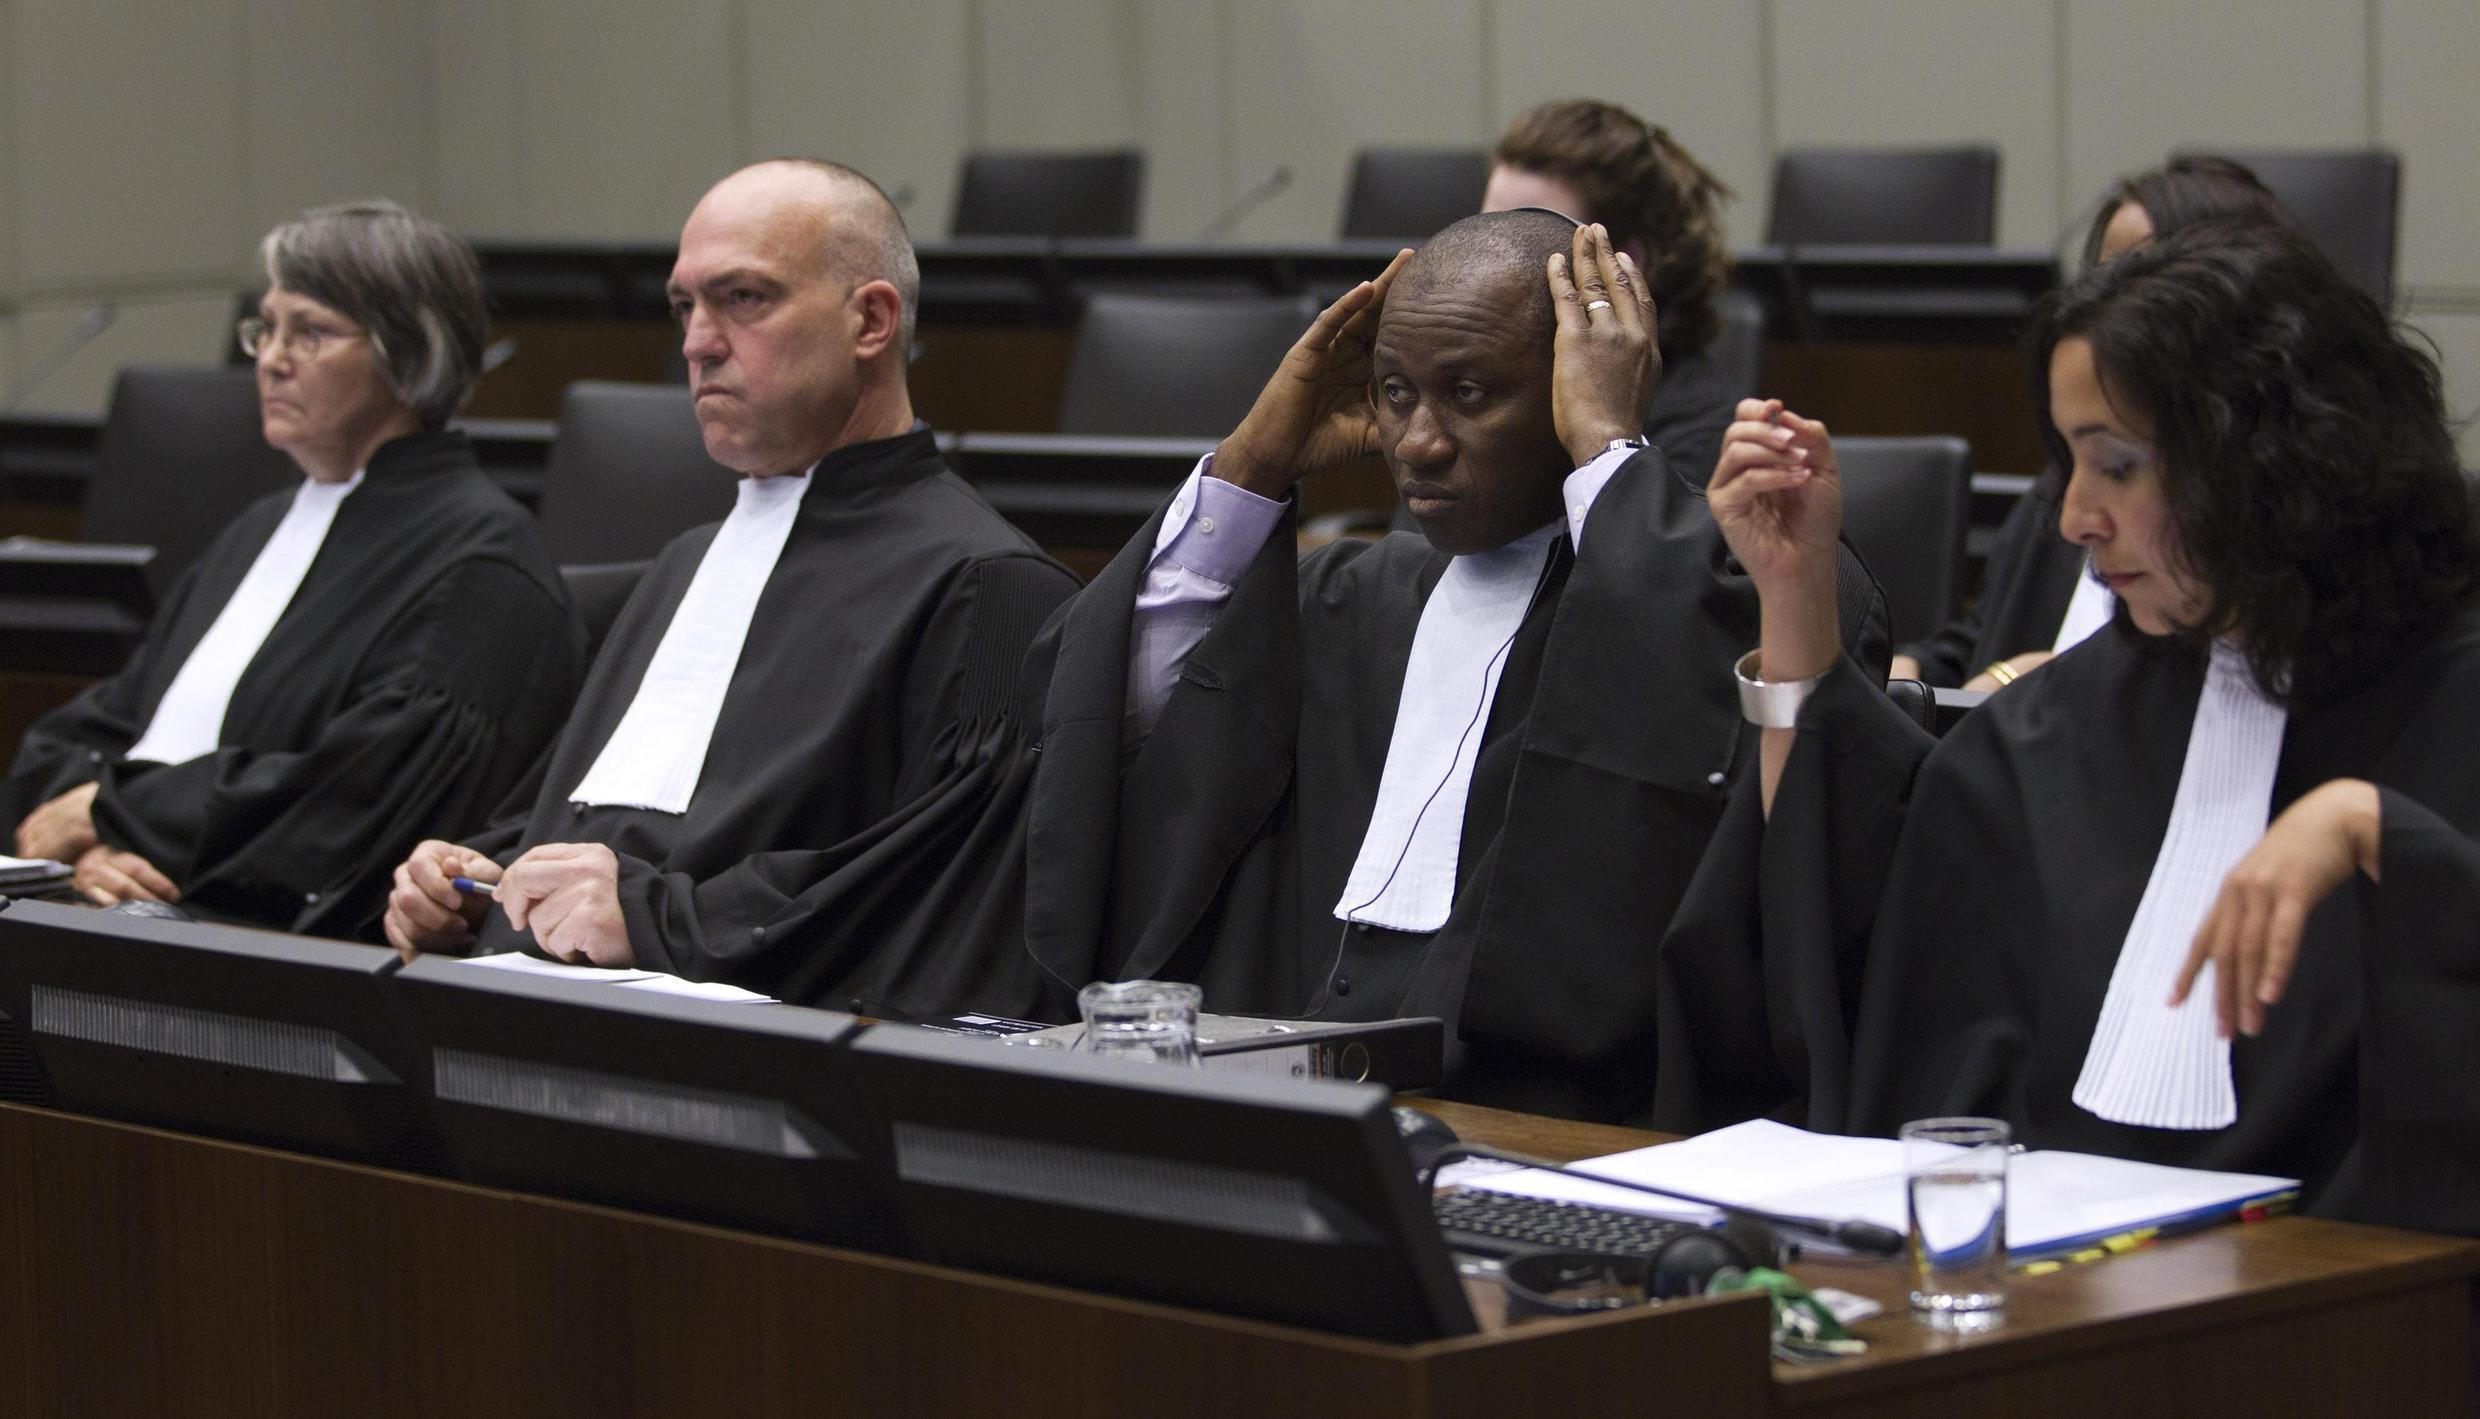 Prosecutors waiting for the verdict against former Liberian President Charles Taylor, The Hague, 26 April, 2012